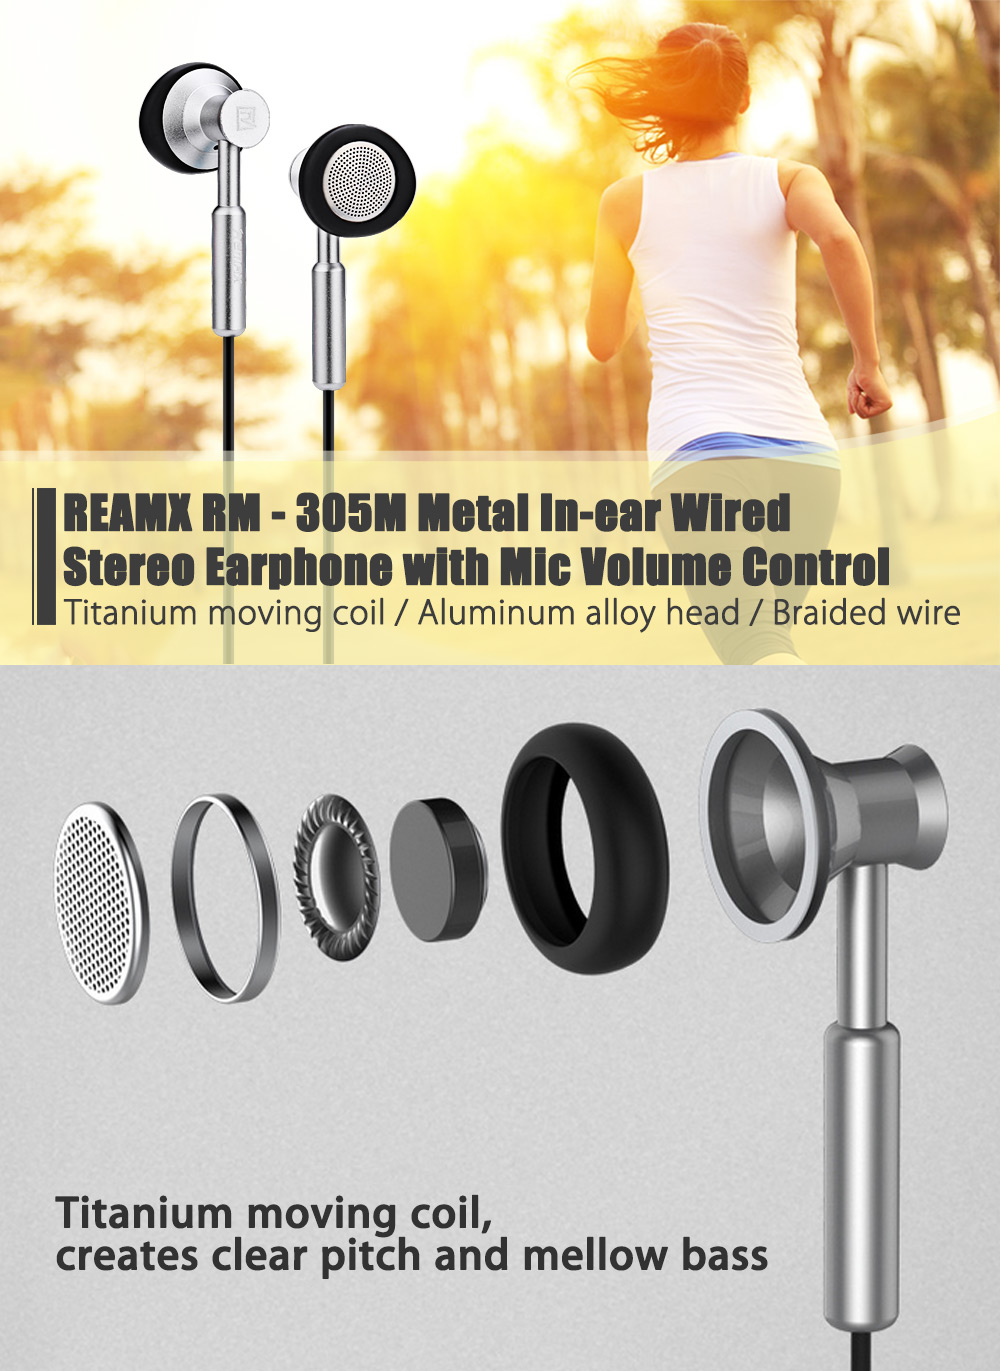 Reamx Rm 305m Metal In Ear Wired Stereo Earphone 1135 Free Handsfree Remax With Volume Control Original Package Contents 1 X Pouch Chinese And English User Manual